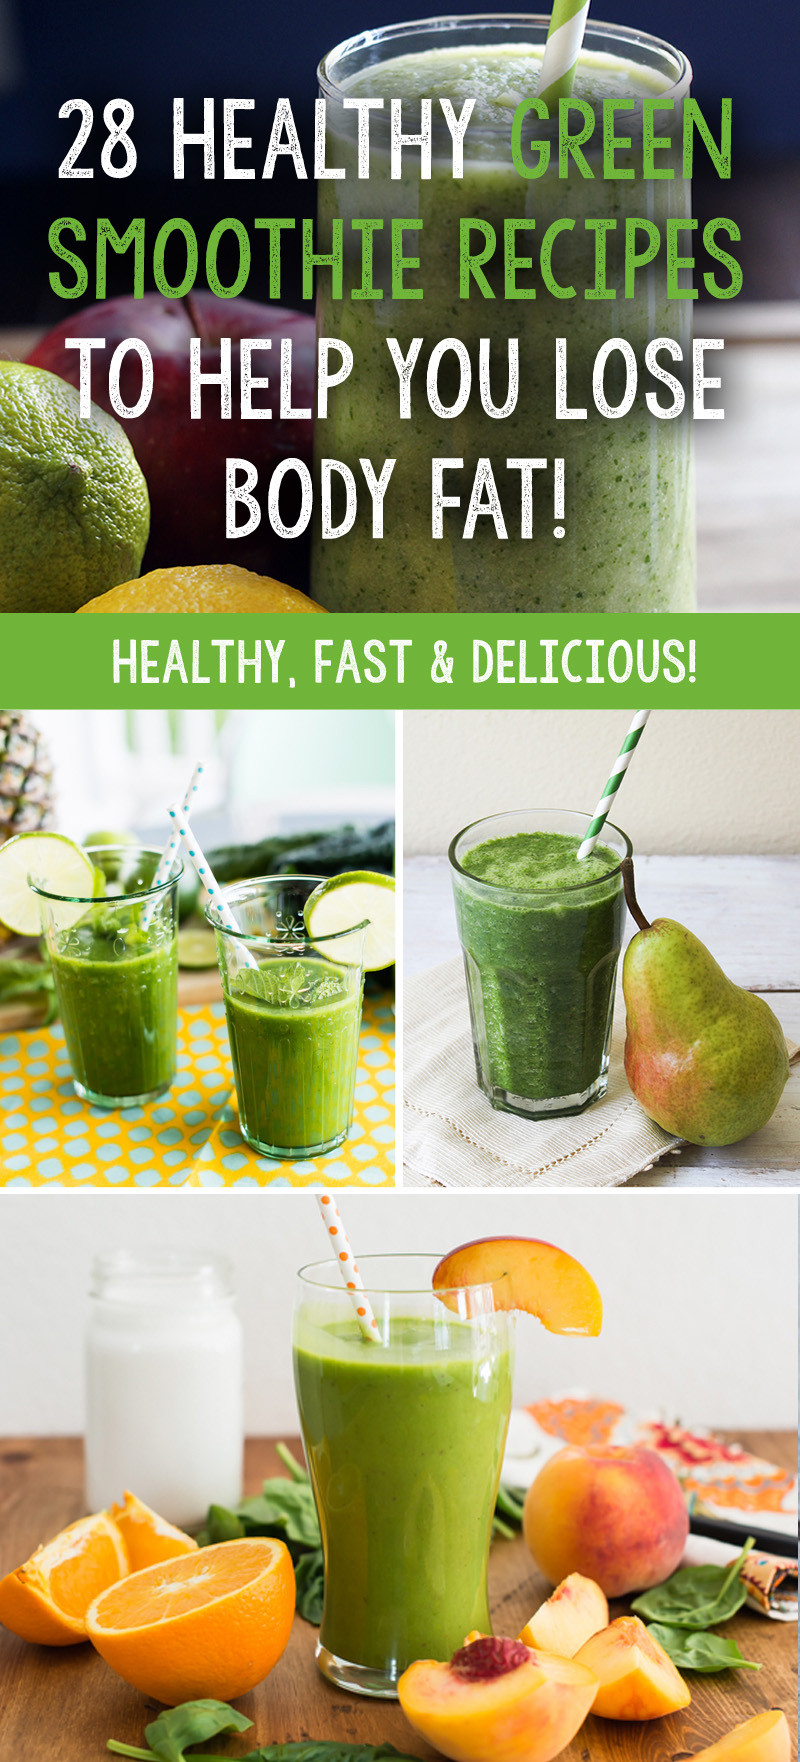 Best Healthy Smoothie Recipes  28 Healthy Green Smoothie Recipes To Help You Lose Body Fat